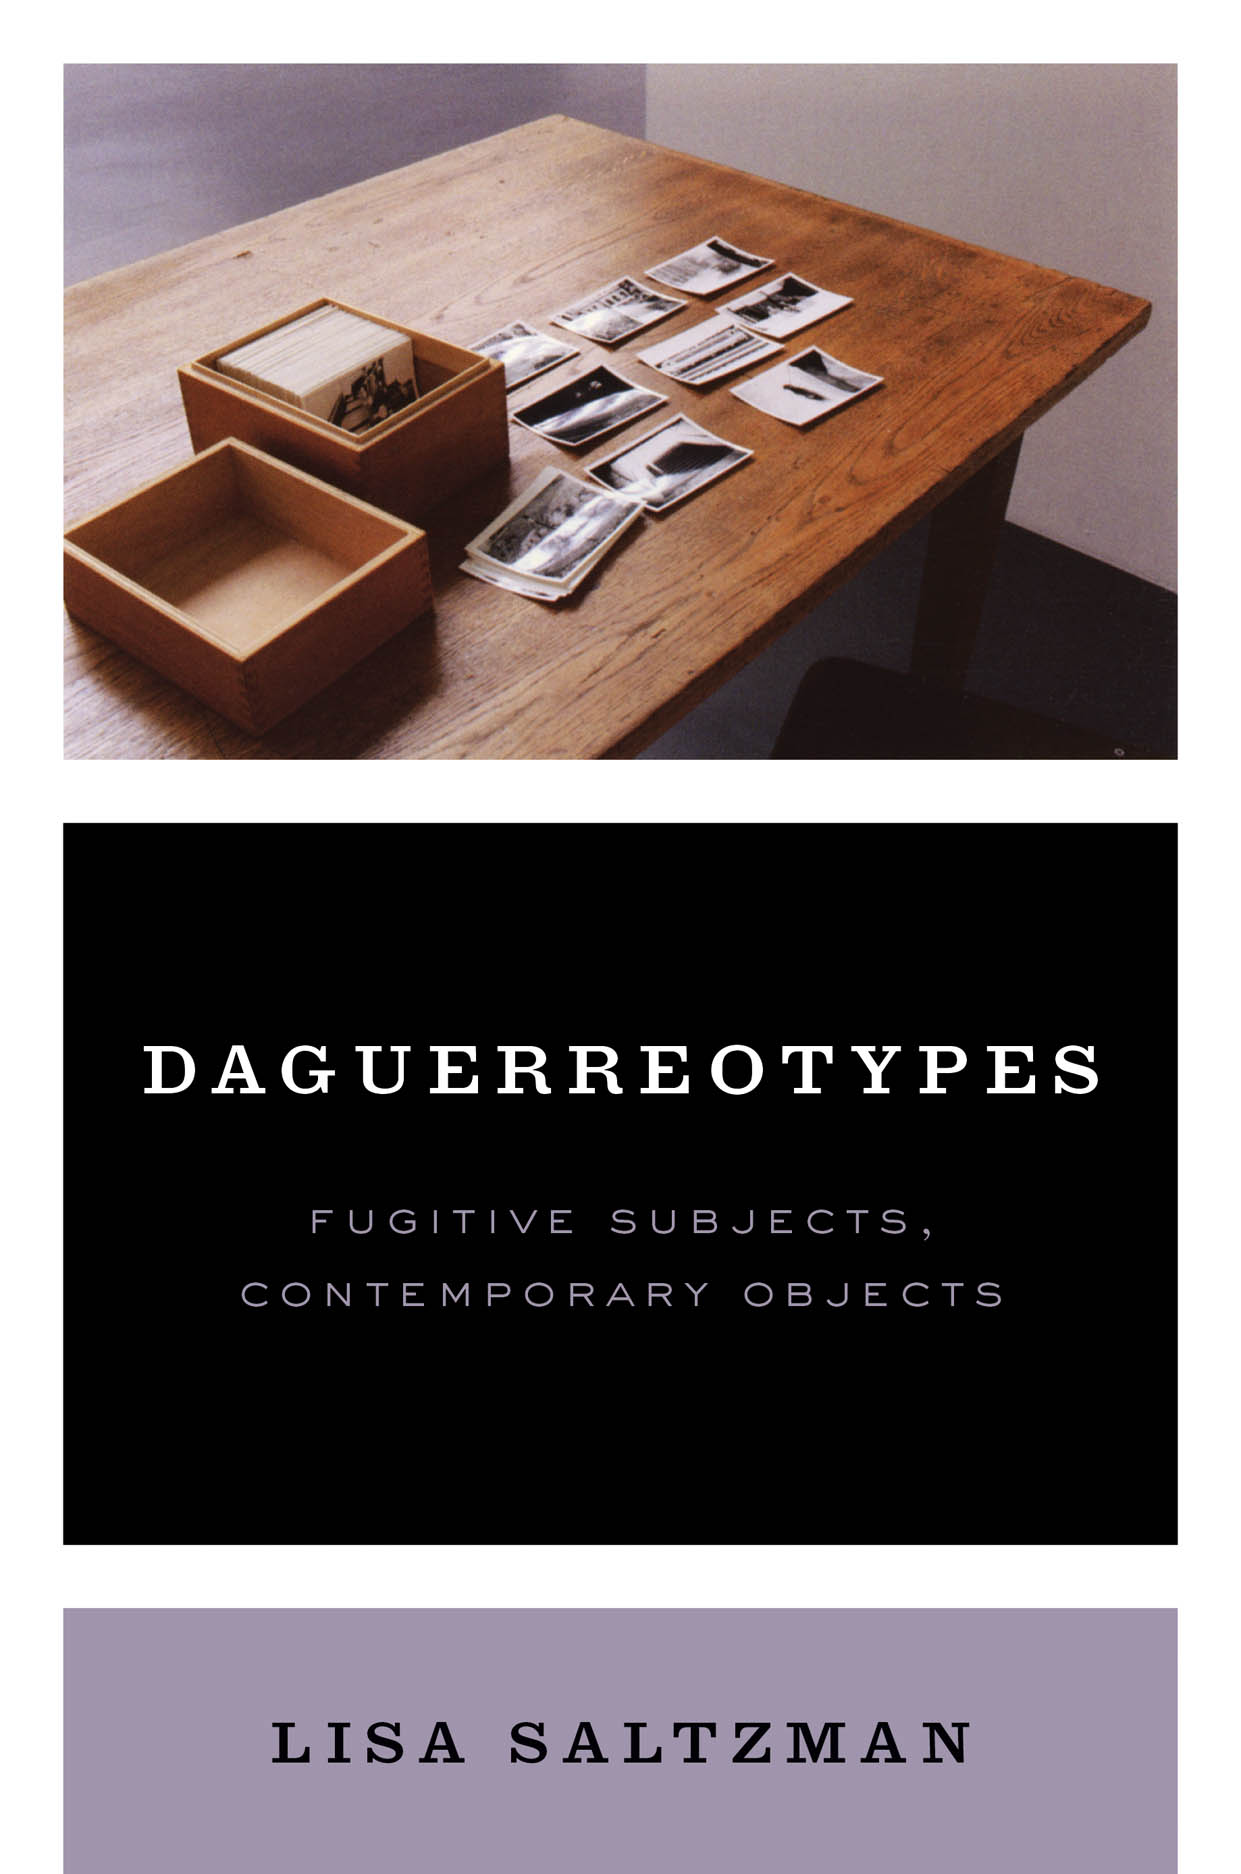 Daguerreotypes: Fugitive Subjects, Contemporary Objects